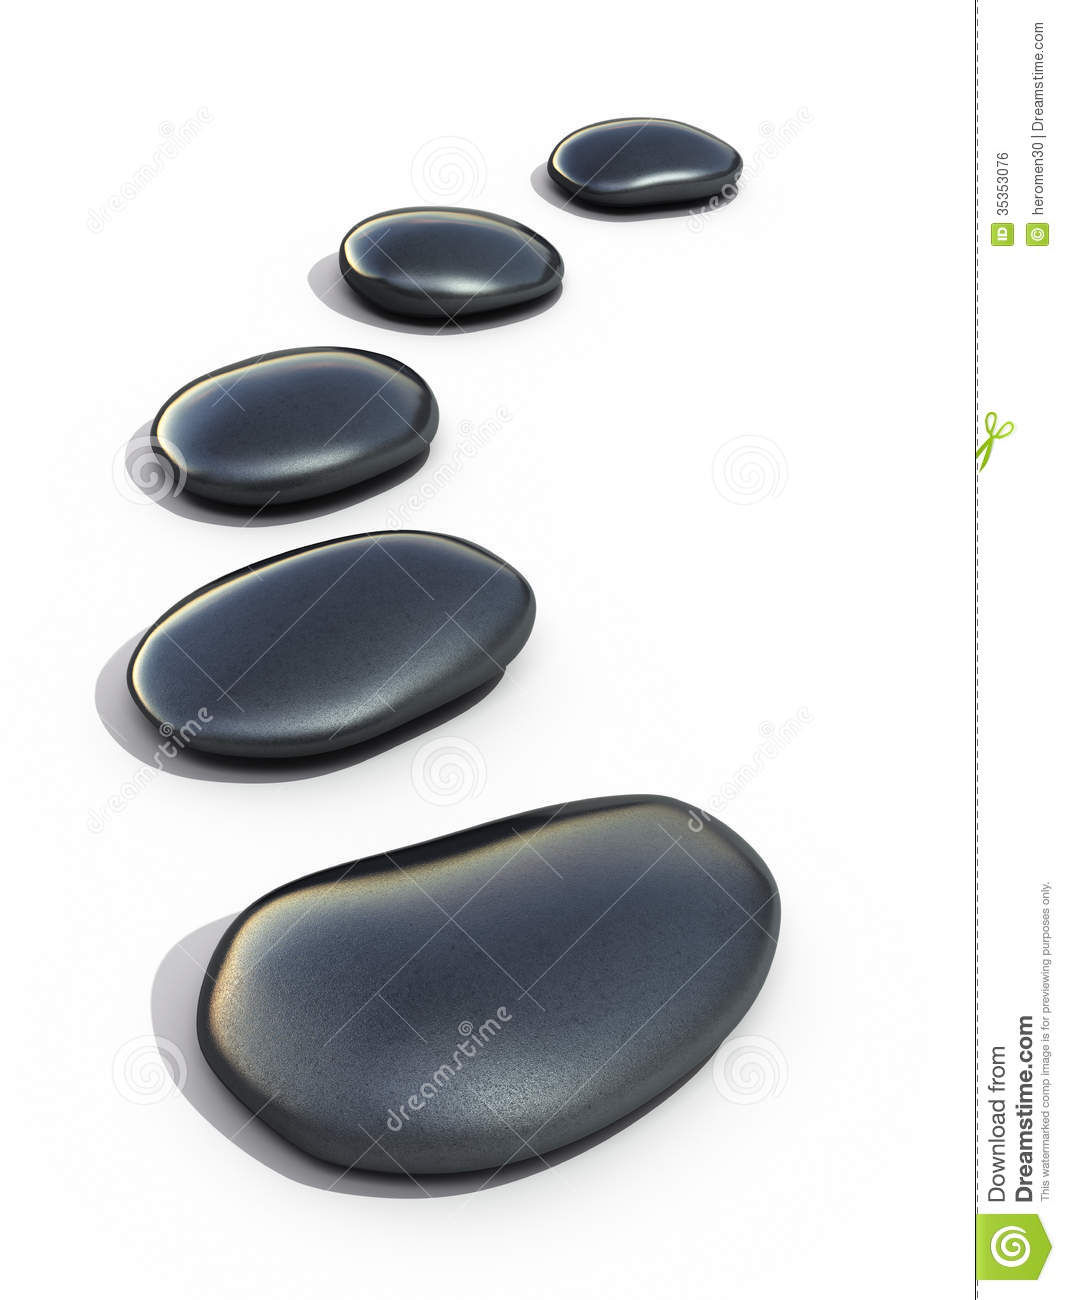 Stepping Stones Clip Art : Zen stones stock illustration image of clipping